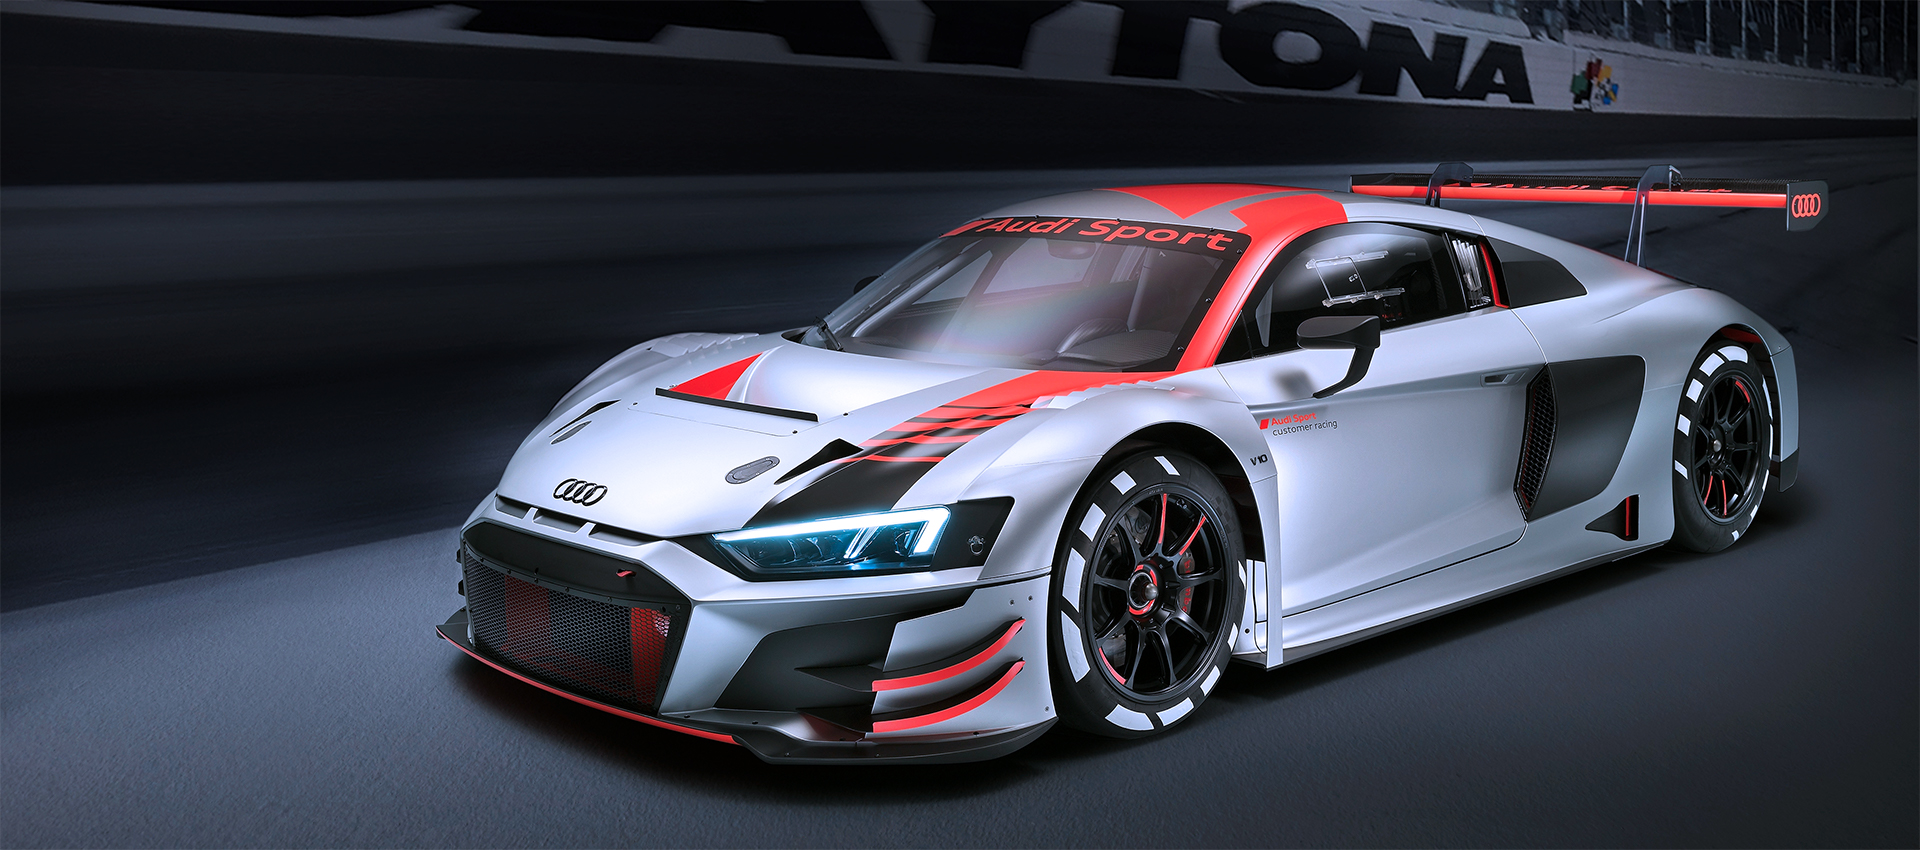 Audi Sport customer racing Invites You To Join Them At The Rolex 24 At Daytona